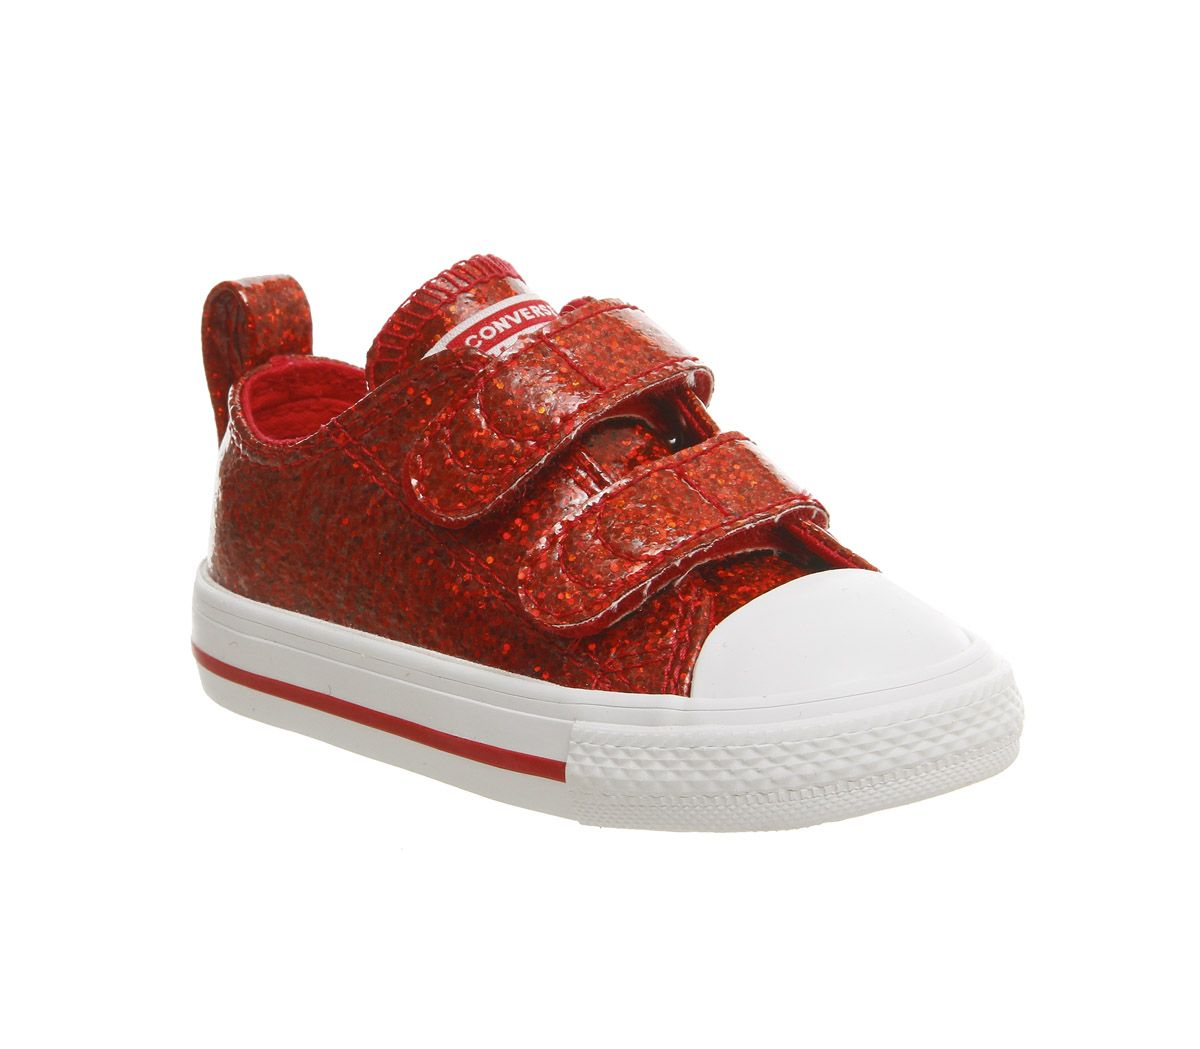 5ef442fdc5c7 Converse All Star 2vlace Trainers Cherry Red Glitter White - Unisex